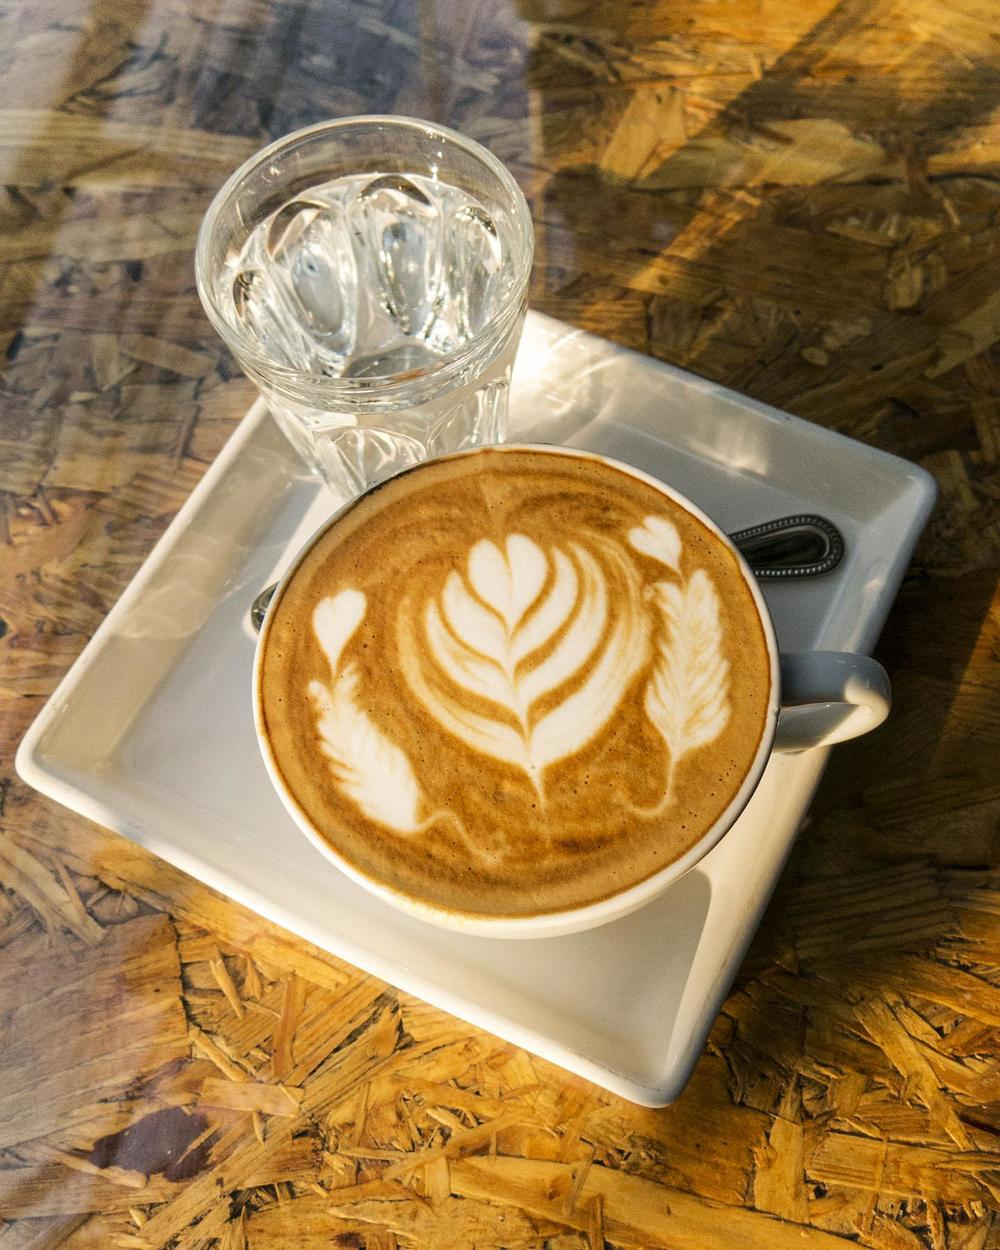 This was made by a different latte artist, using the free pouring method, which we explain further below. Photo by Kimberly Bryant.